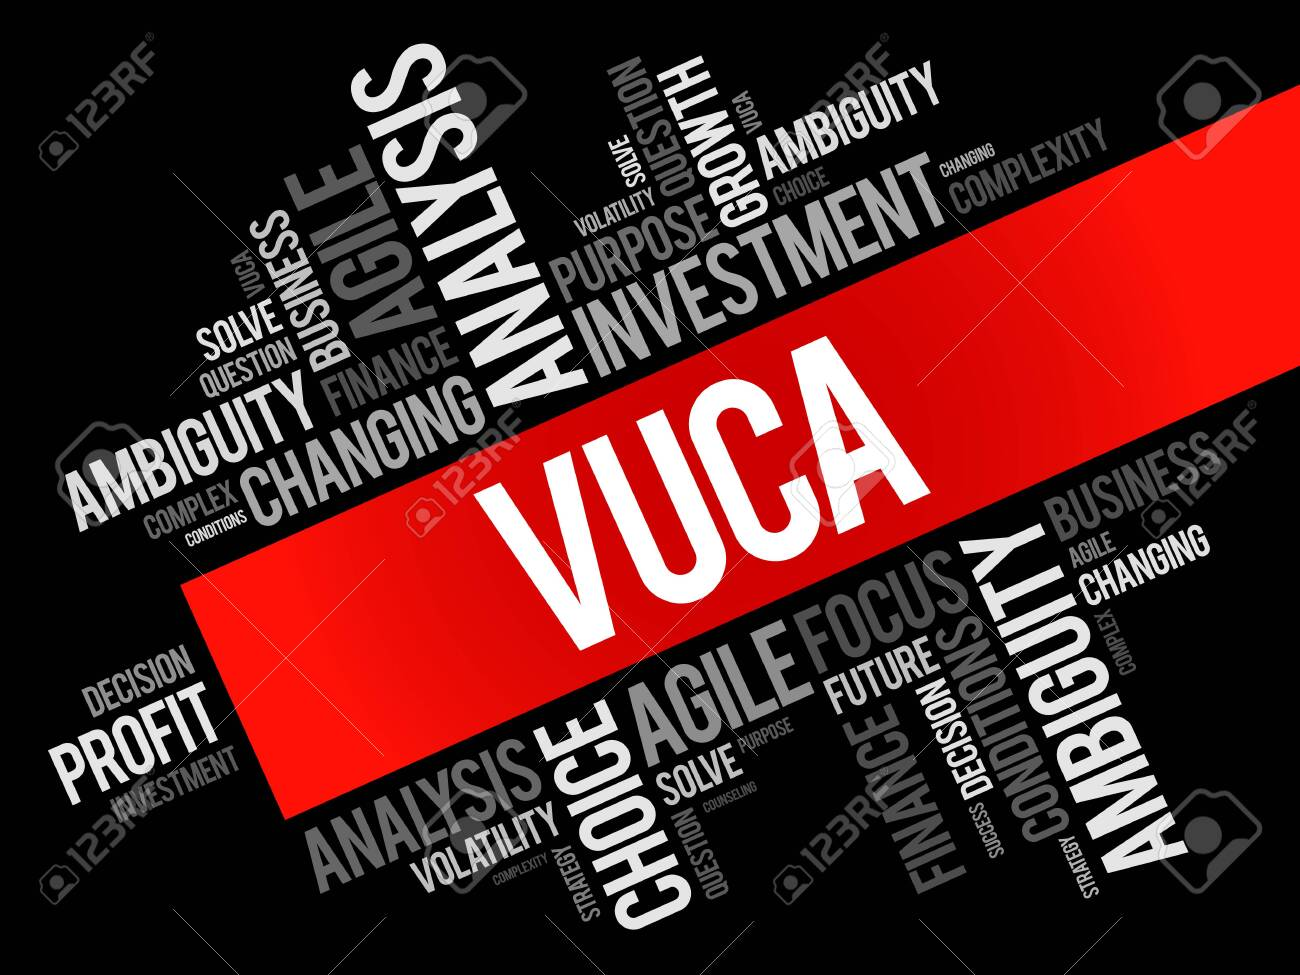 VUCA - Volatility, Uncertainty, Complexity, Ambiguity acronym word cloud, business concept background - 124400160